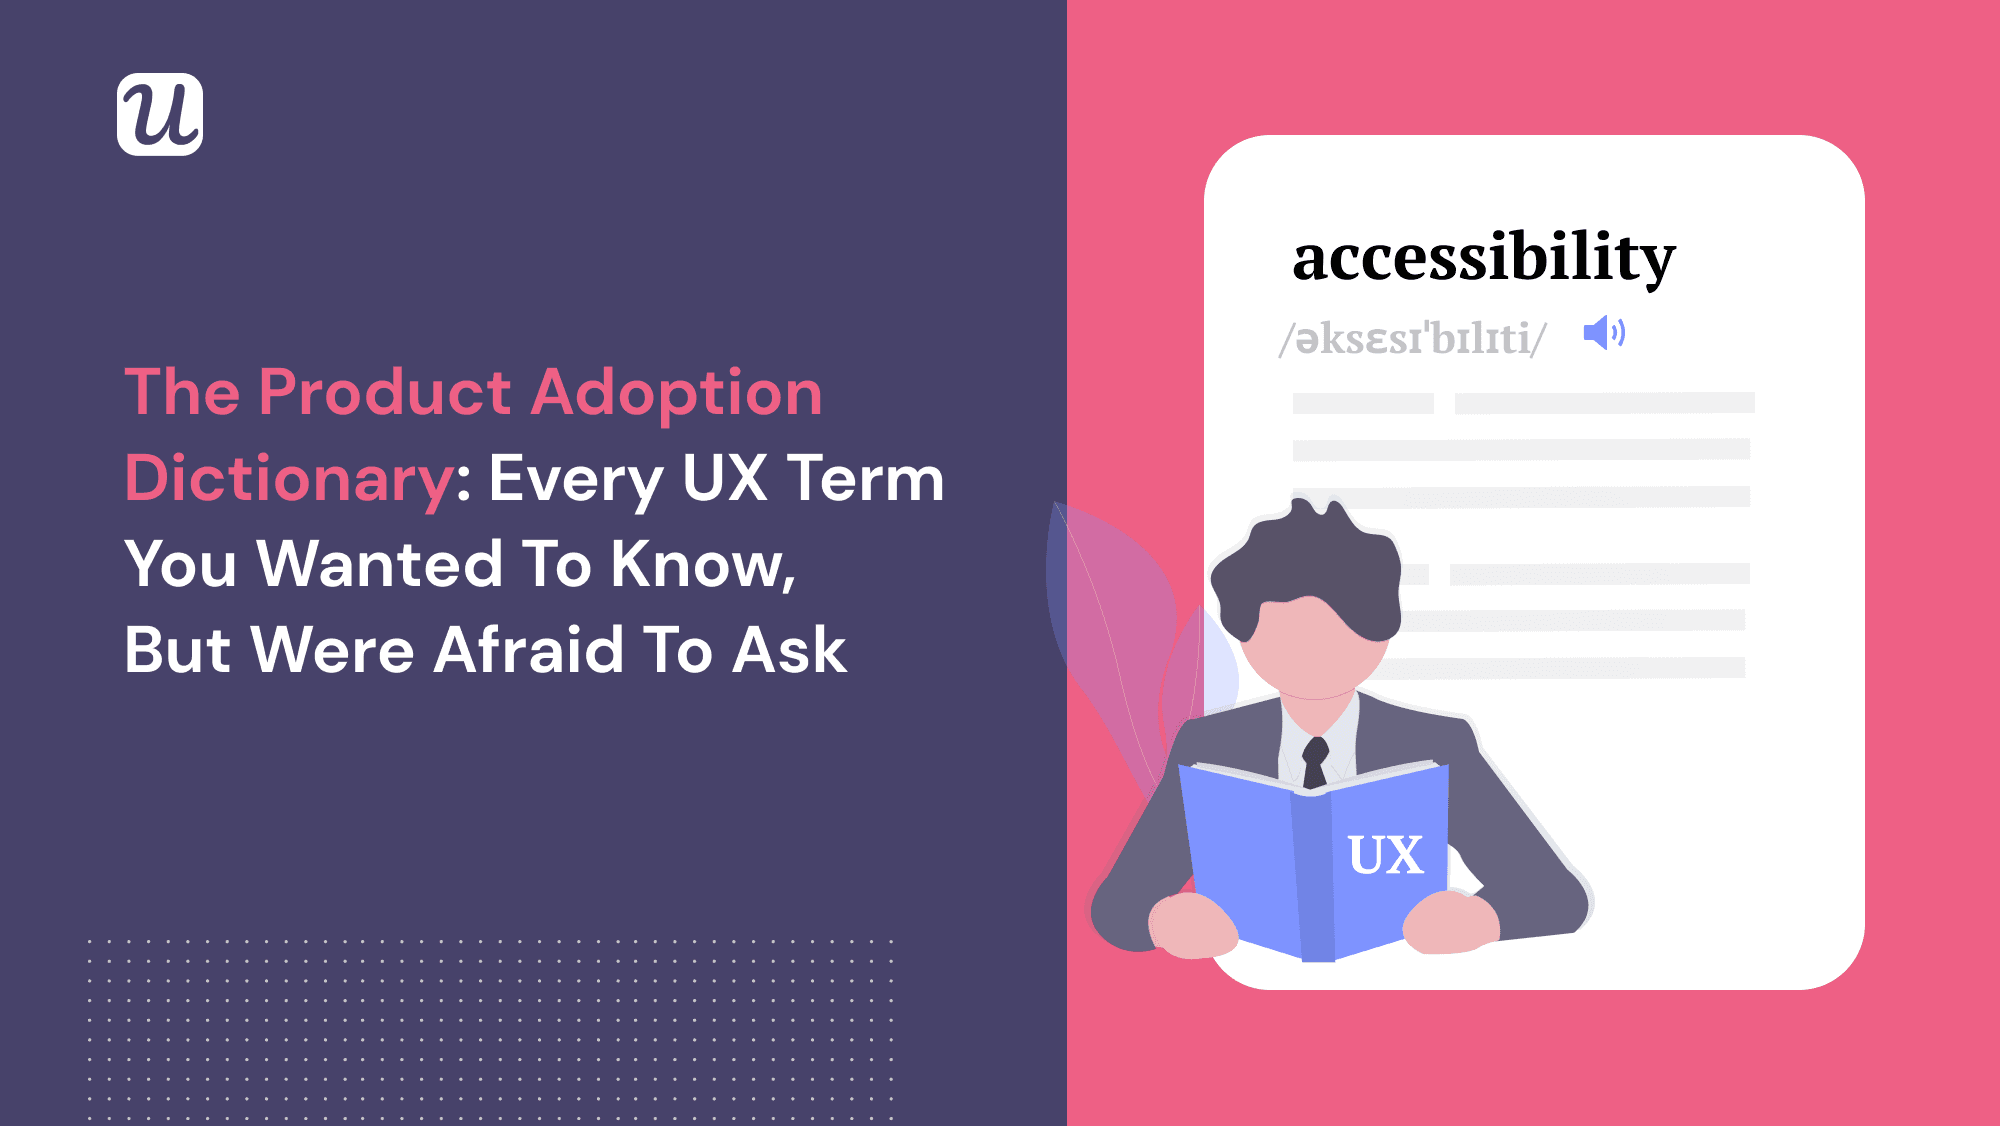 The Product Adoption Dictionary: Every UX Term You Wanted To Know, But Were Afraid To Ask